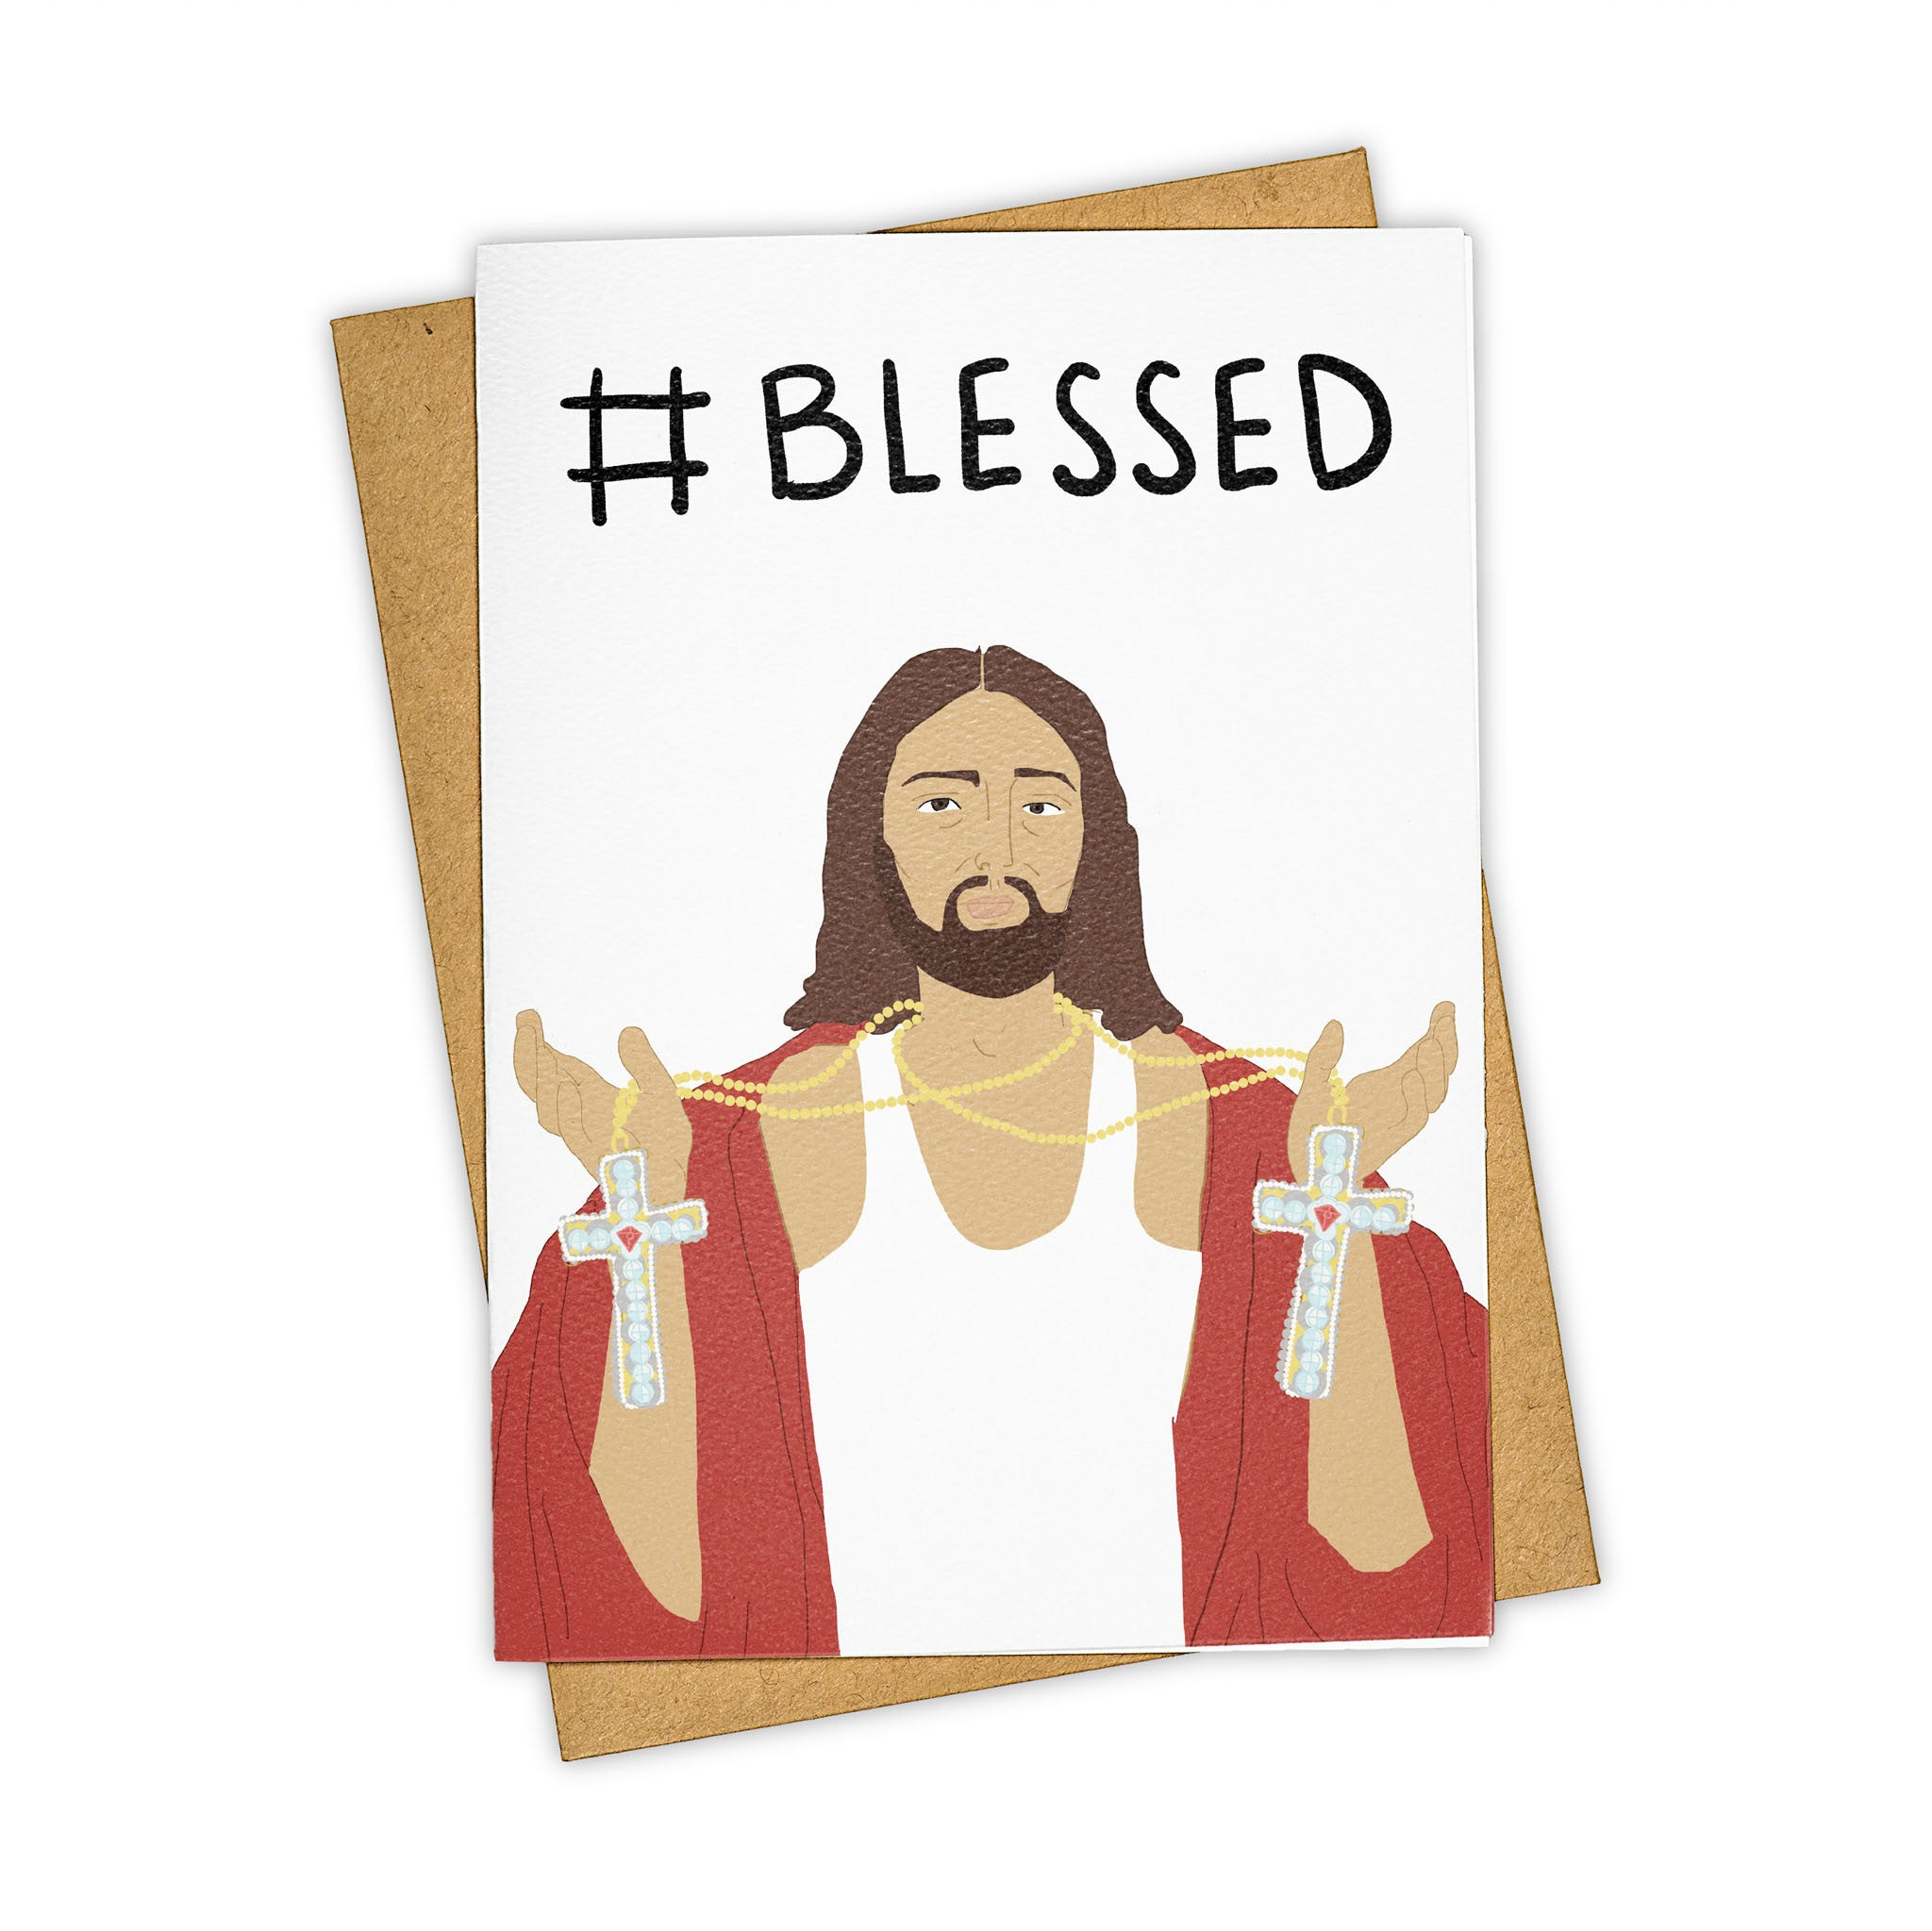 TAYHAM Jesus Blessed #Blessed Pop Culture Greeting Card